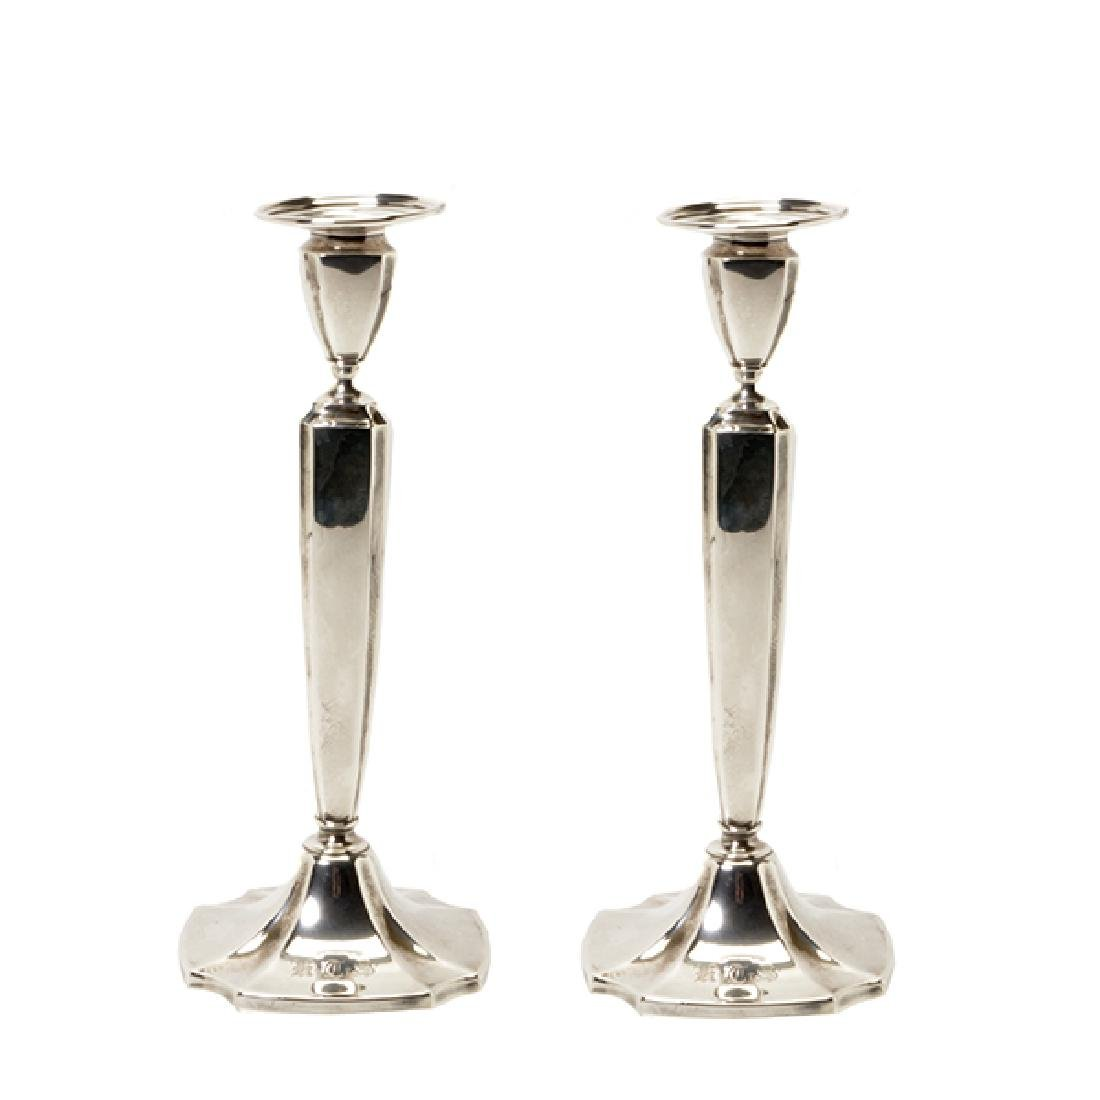 Pair of Whiting Manufacturing Company Sterling